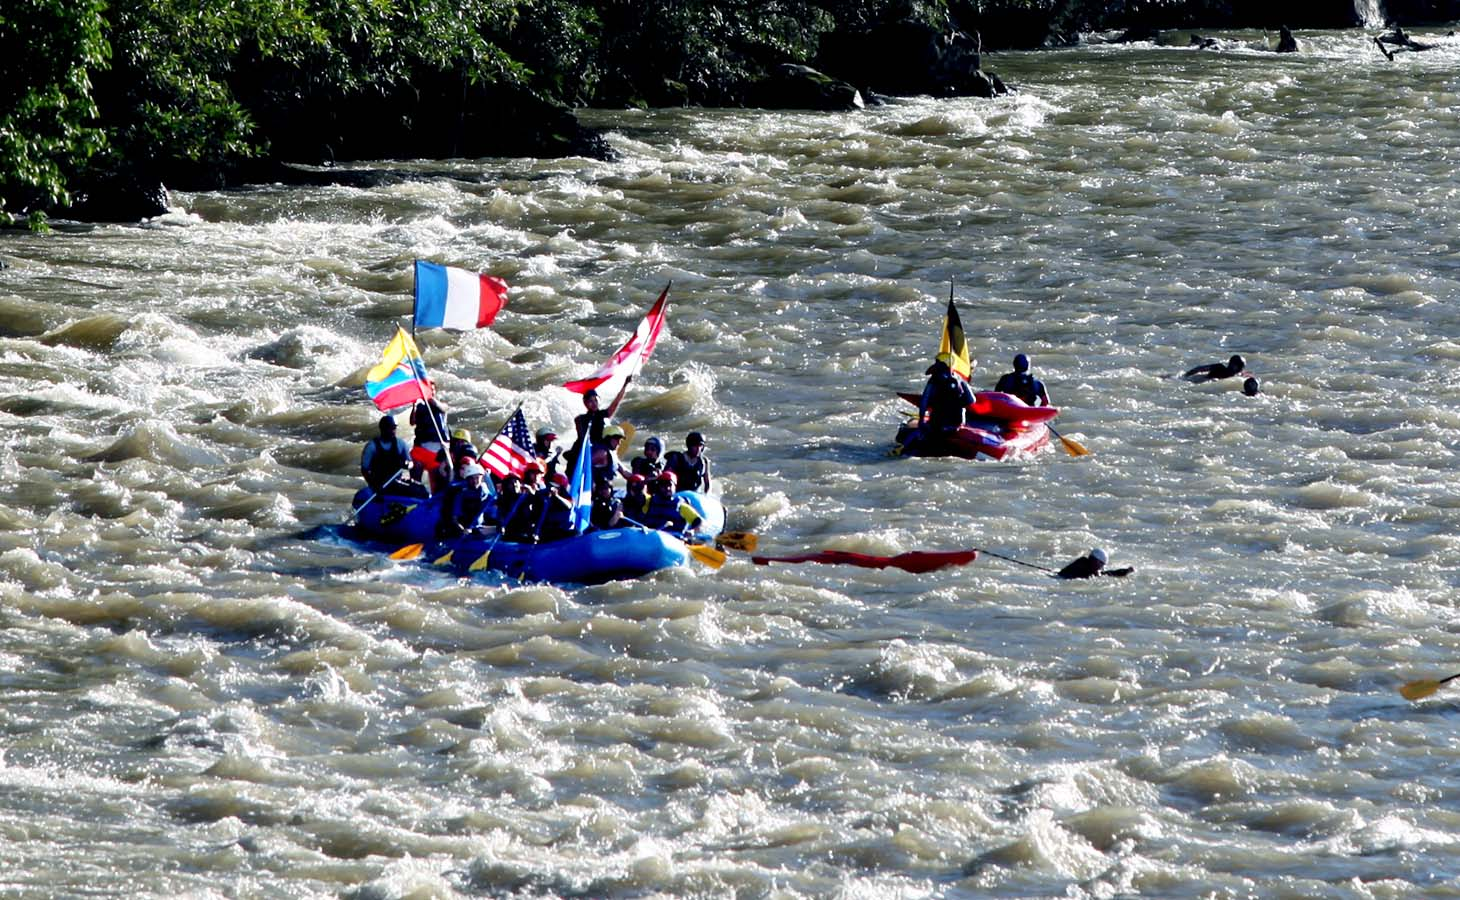 Rafting - For white-water rafting enthusiasts, there is honestly no place better than the rivers of Ecuador. These fast-flowing rivers that literally descend from the Andean glaciers themselves are almost like roads that allow us a unique view into how nature transforms itself.